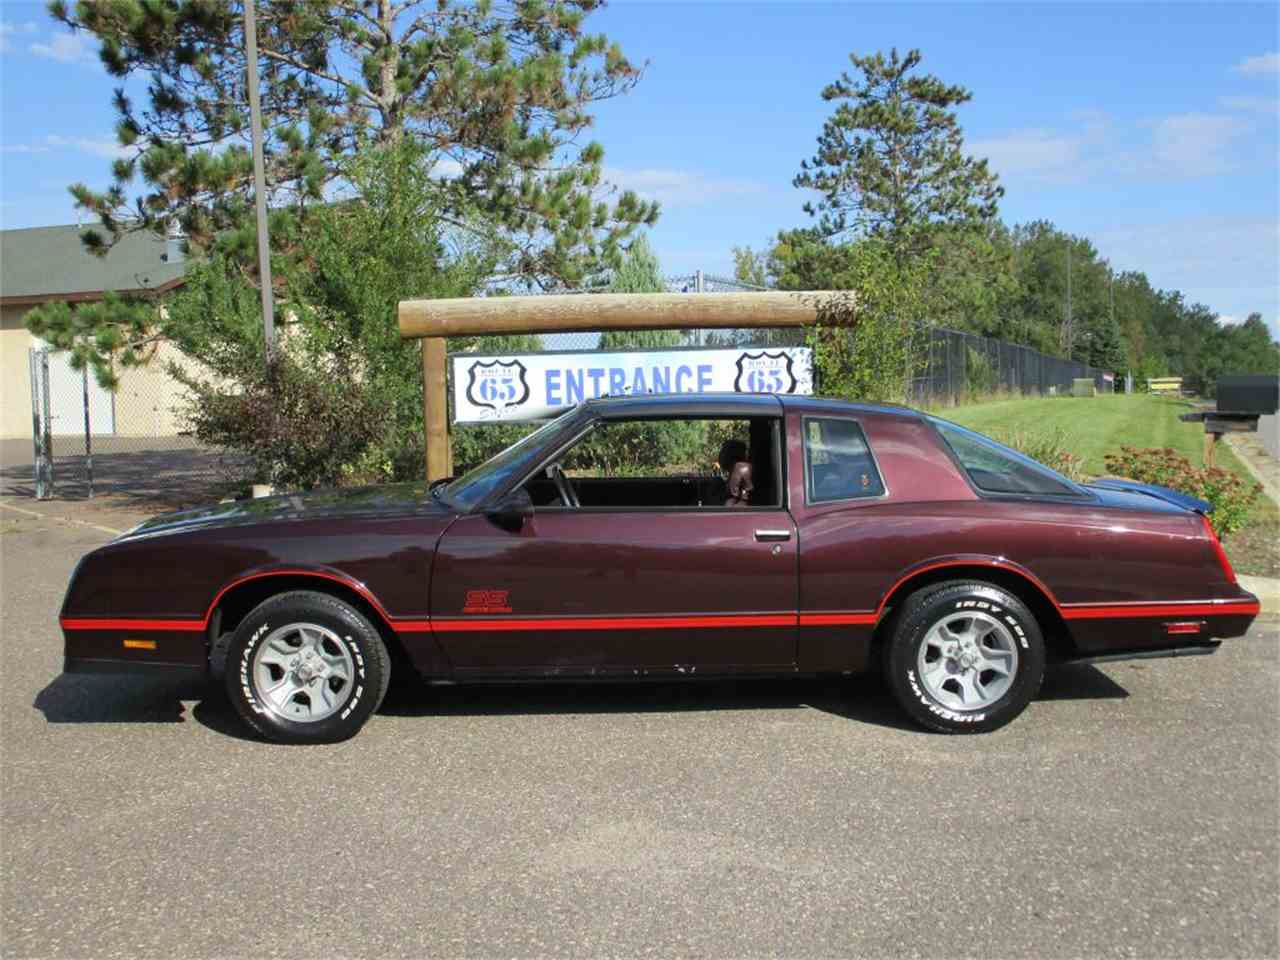 Classic Chevrolet Monte Carlo for Sale on ClassicCars.com - 132 ...